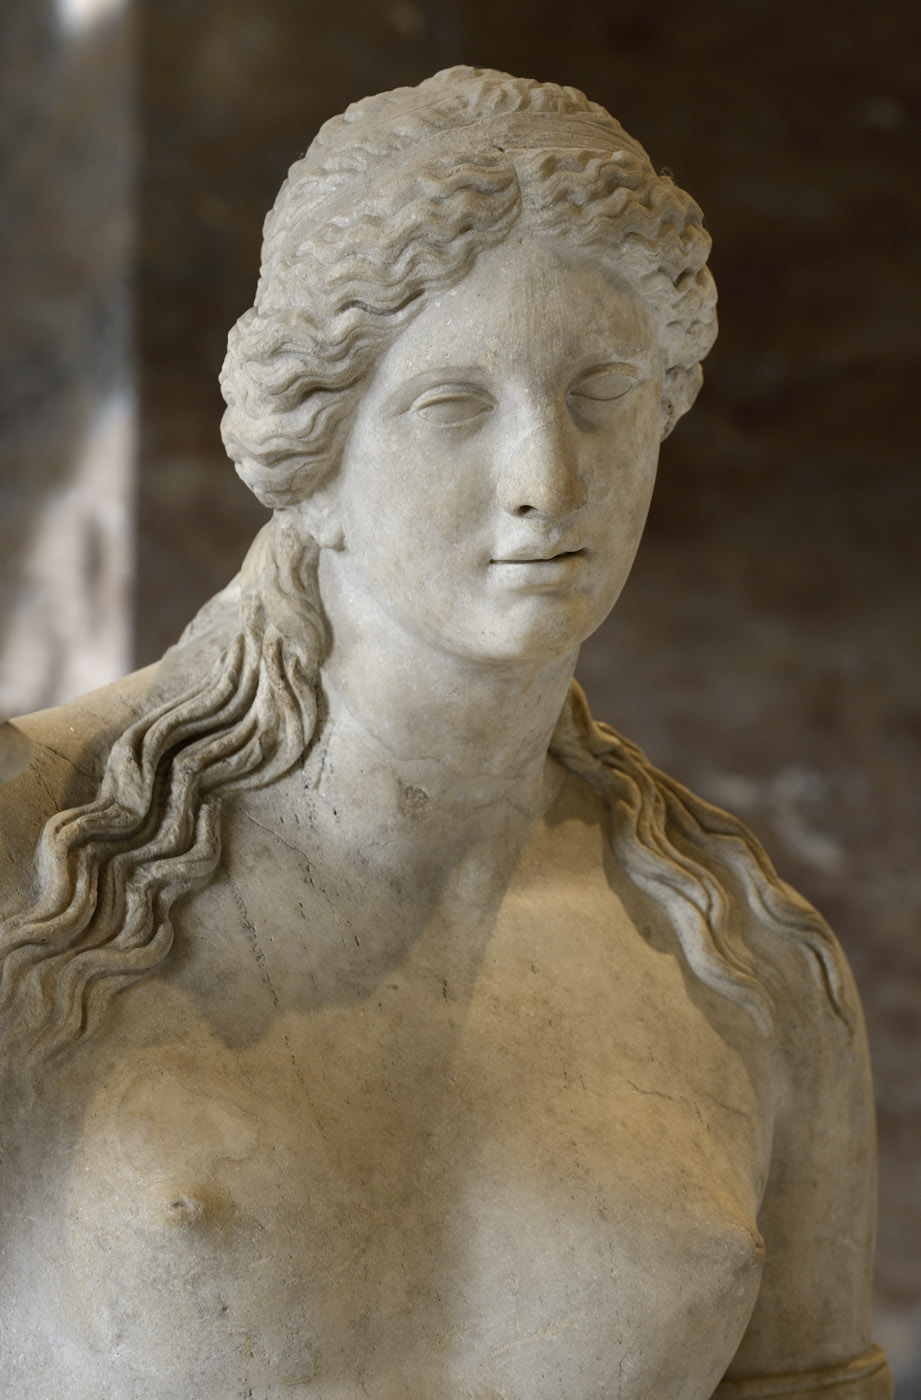 Venus of Arles (close-up). Marble from the mount Hymette. Roman work of the late 1st cent. BCE after a work by Praxiteles. Inv. No. MR 365 / Ma 439. Paris, Louvre Museum